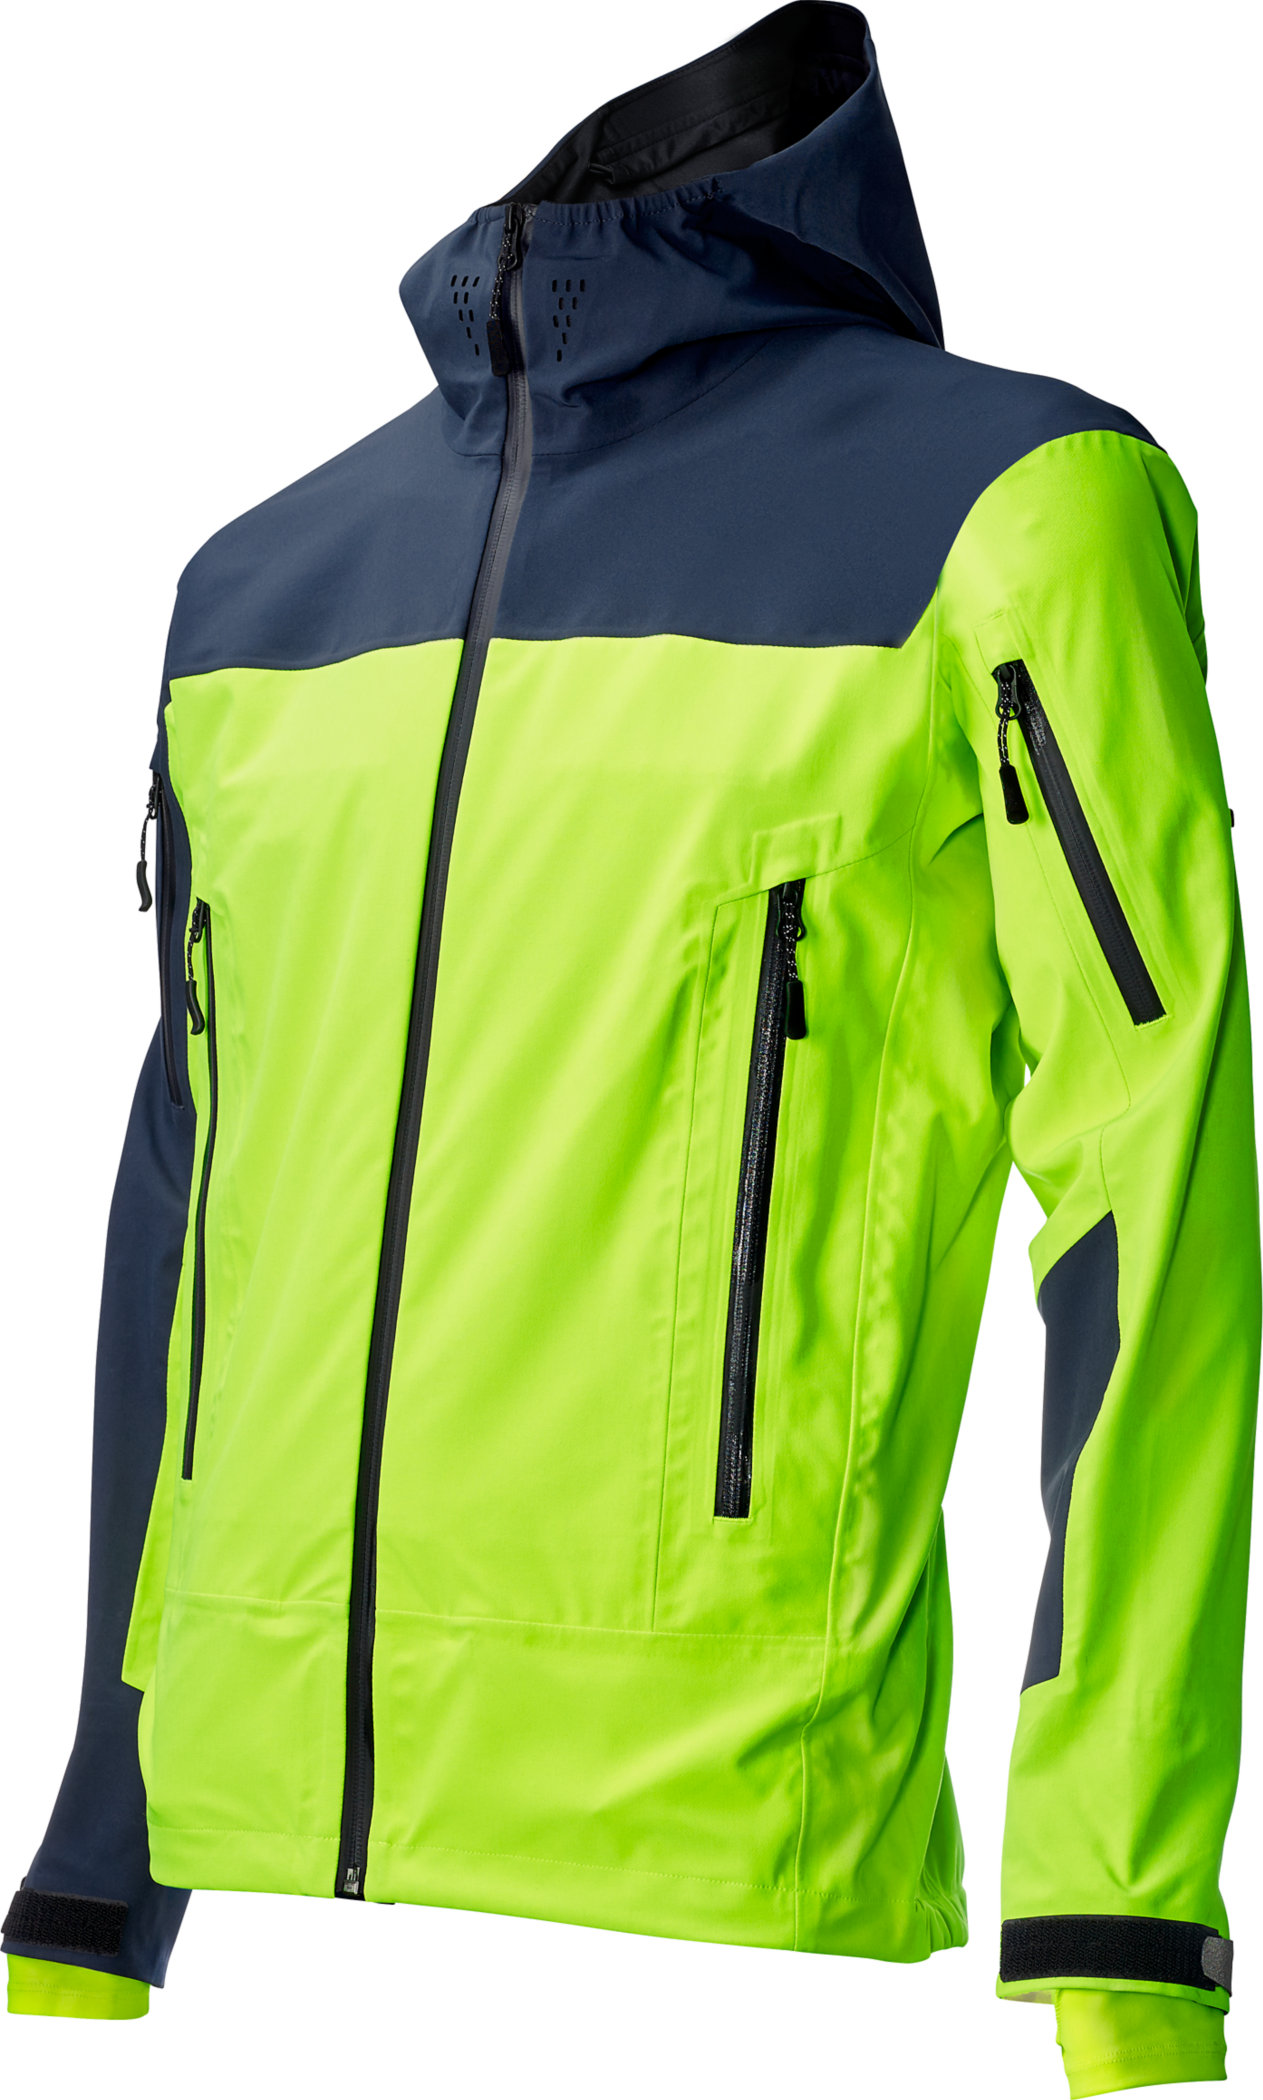 SPECIALIZED 686 X 3L TECH JACKET NEON YEL/NVY M - Alpha Bikes